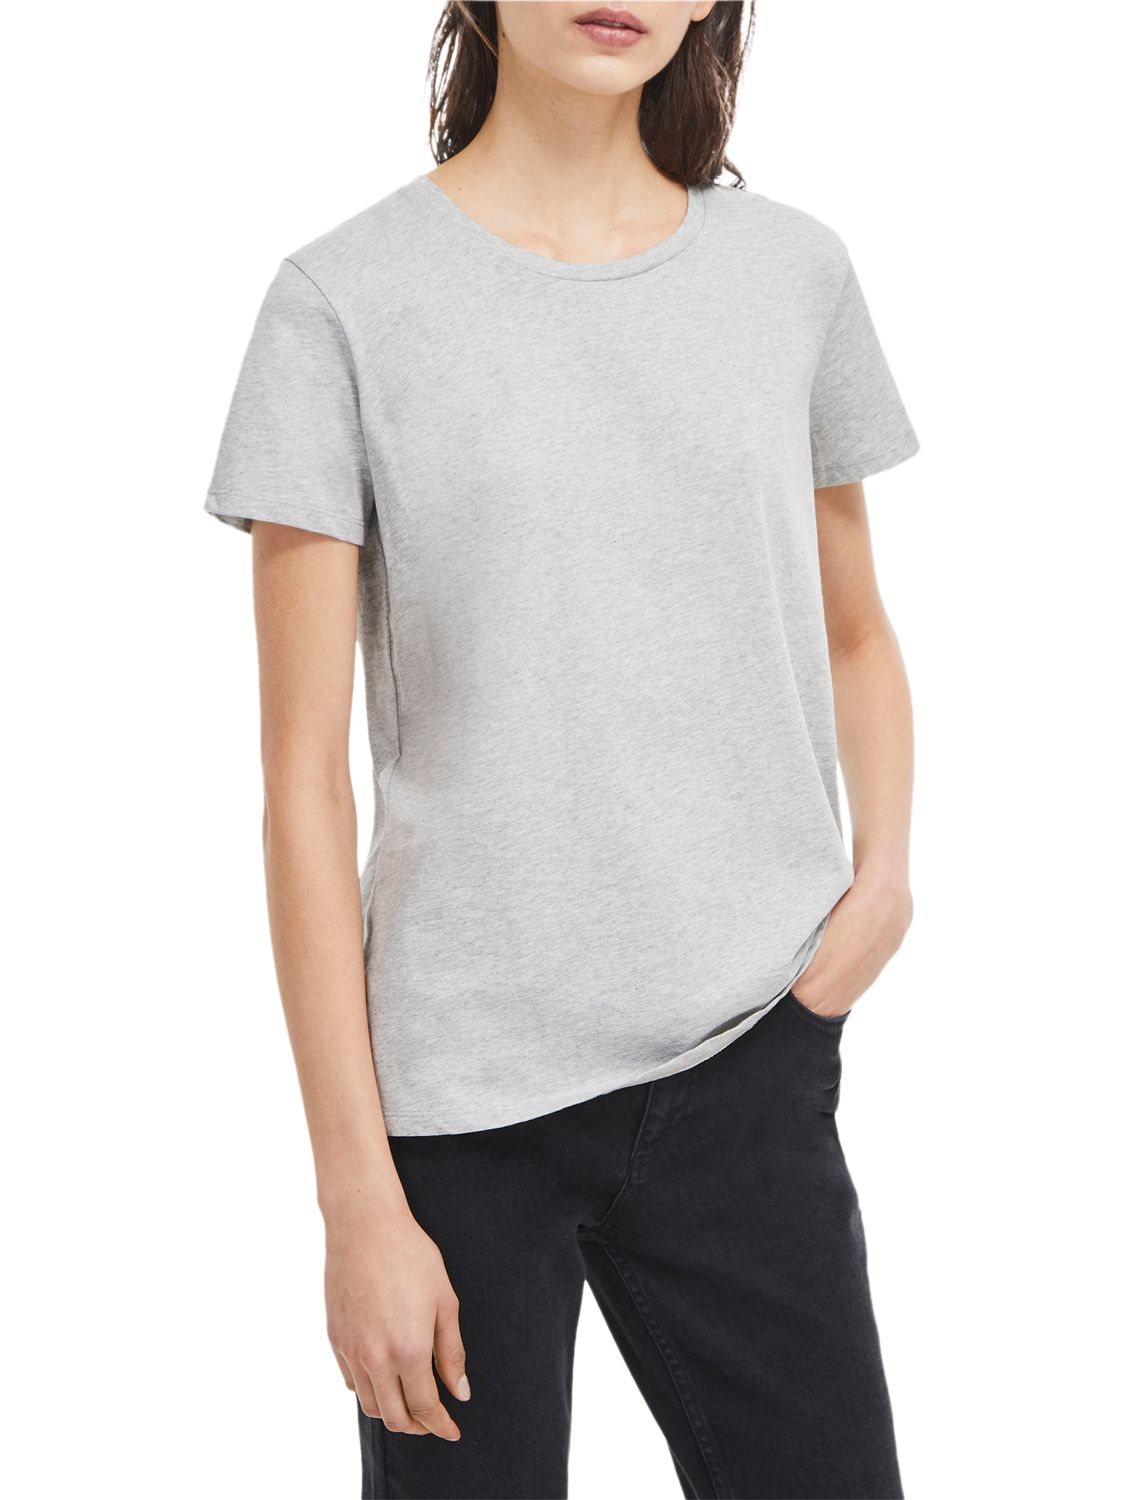 French Connection French Connection Classic Crew T-Shirt, Grey Marl